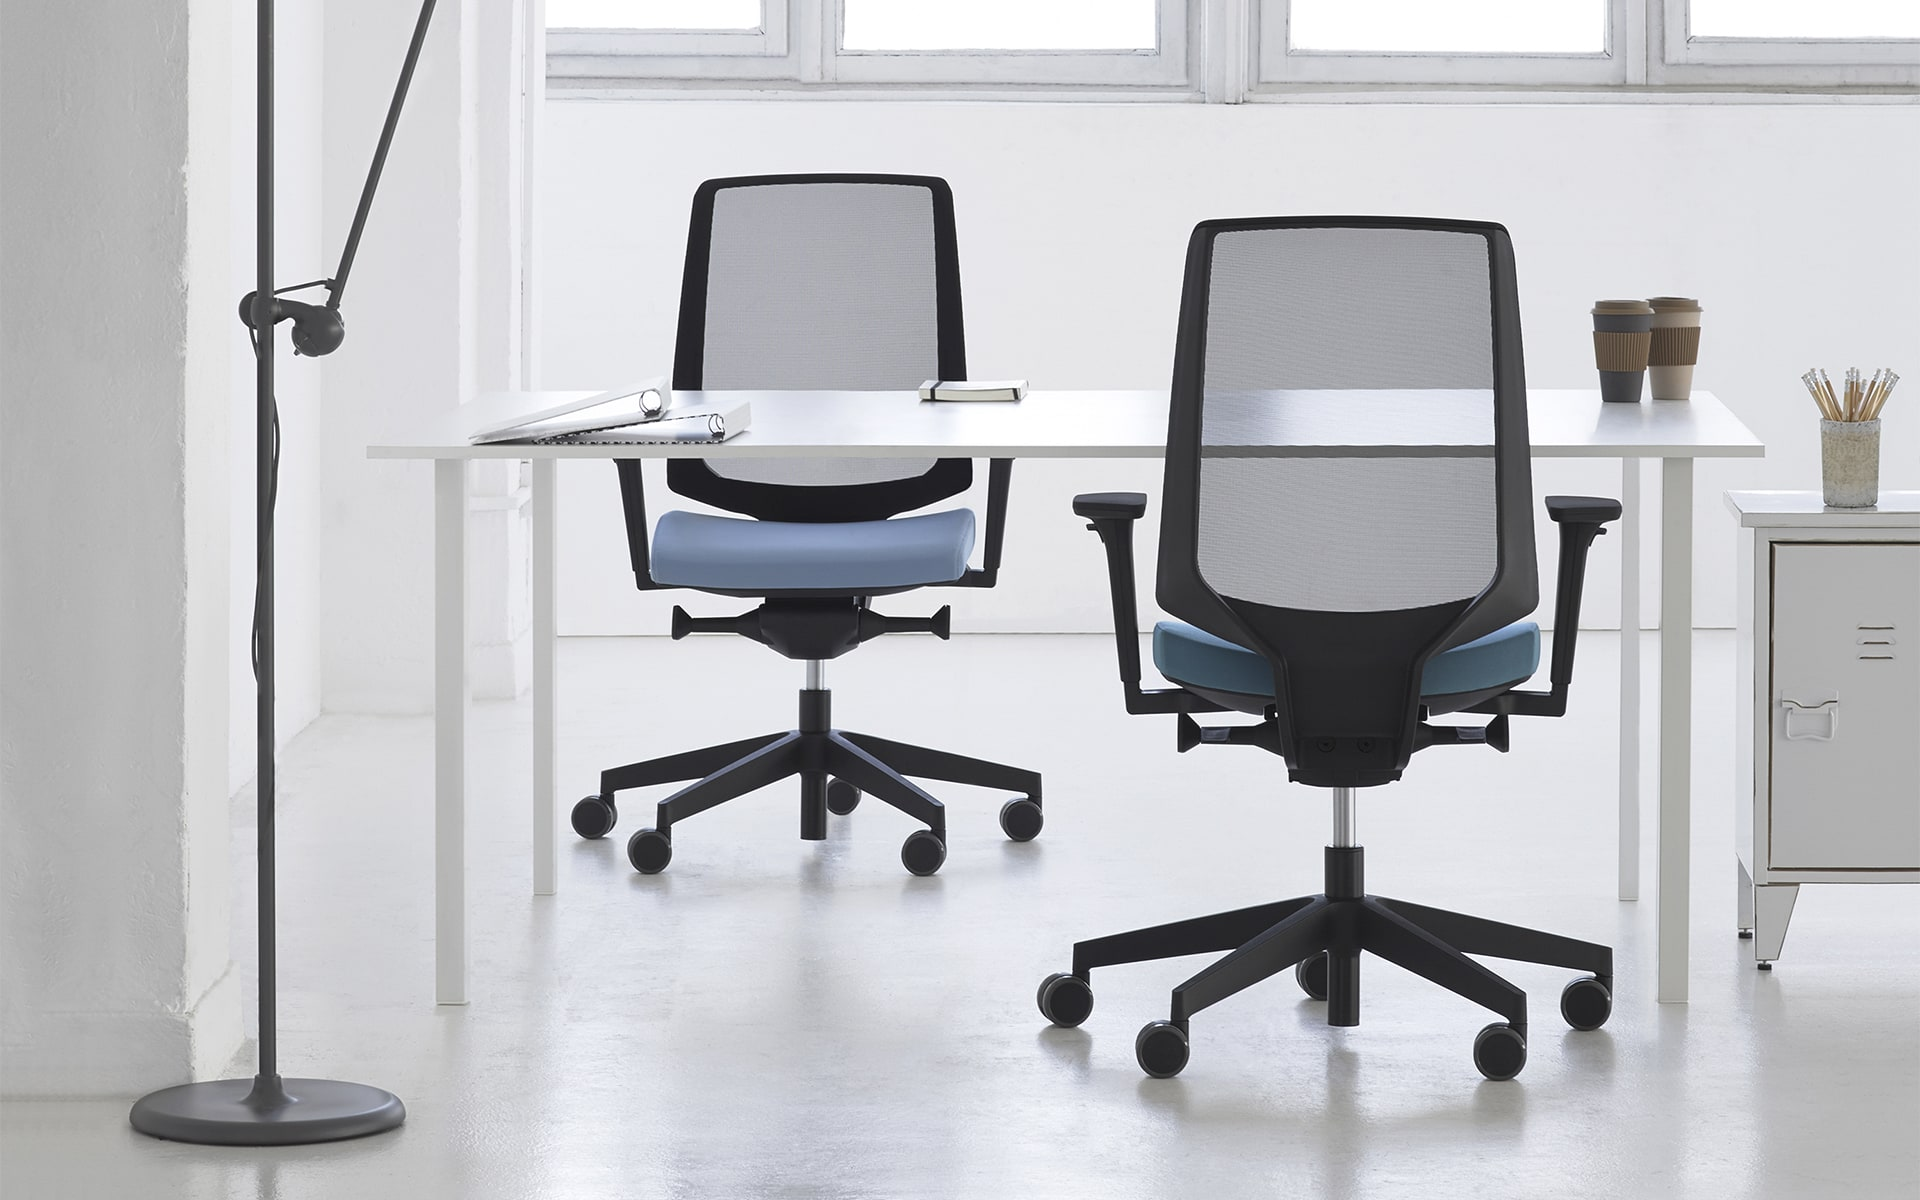 Profim LightUp office chairs by ITO Design with blue upholstery in stylish loft office